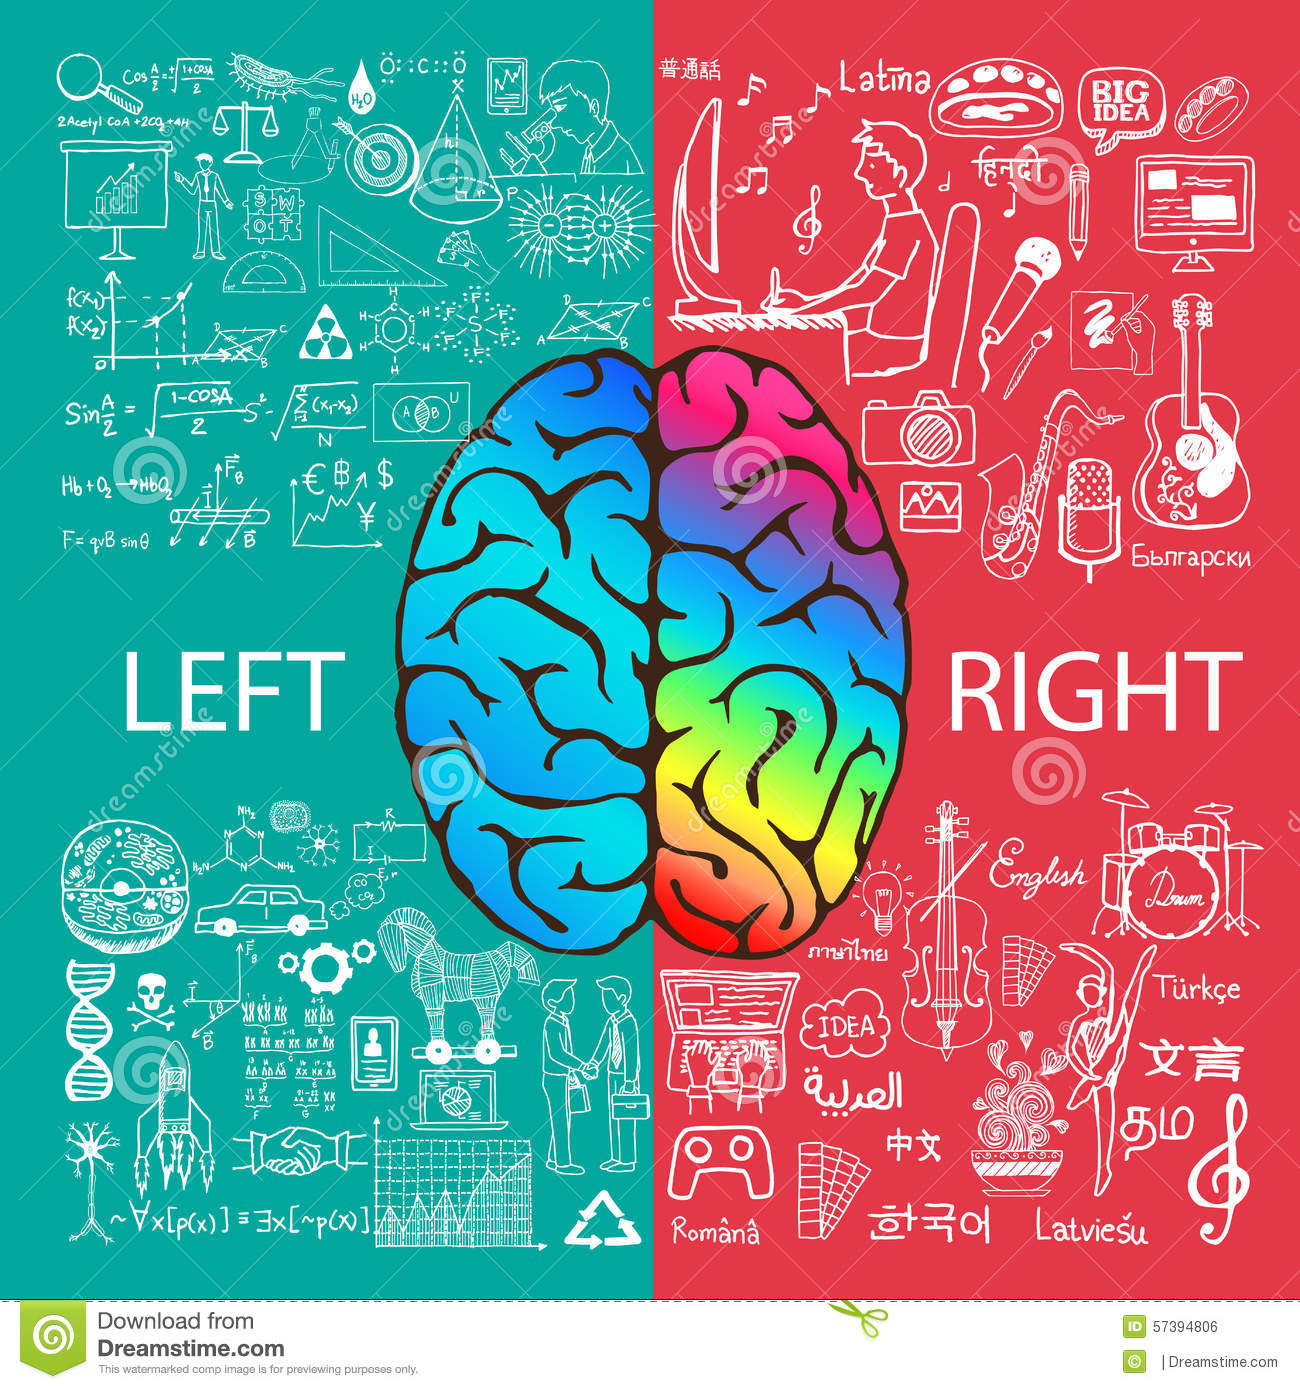 Left And Right Brain Functions With Doodles Stock Vector ...